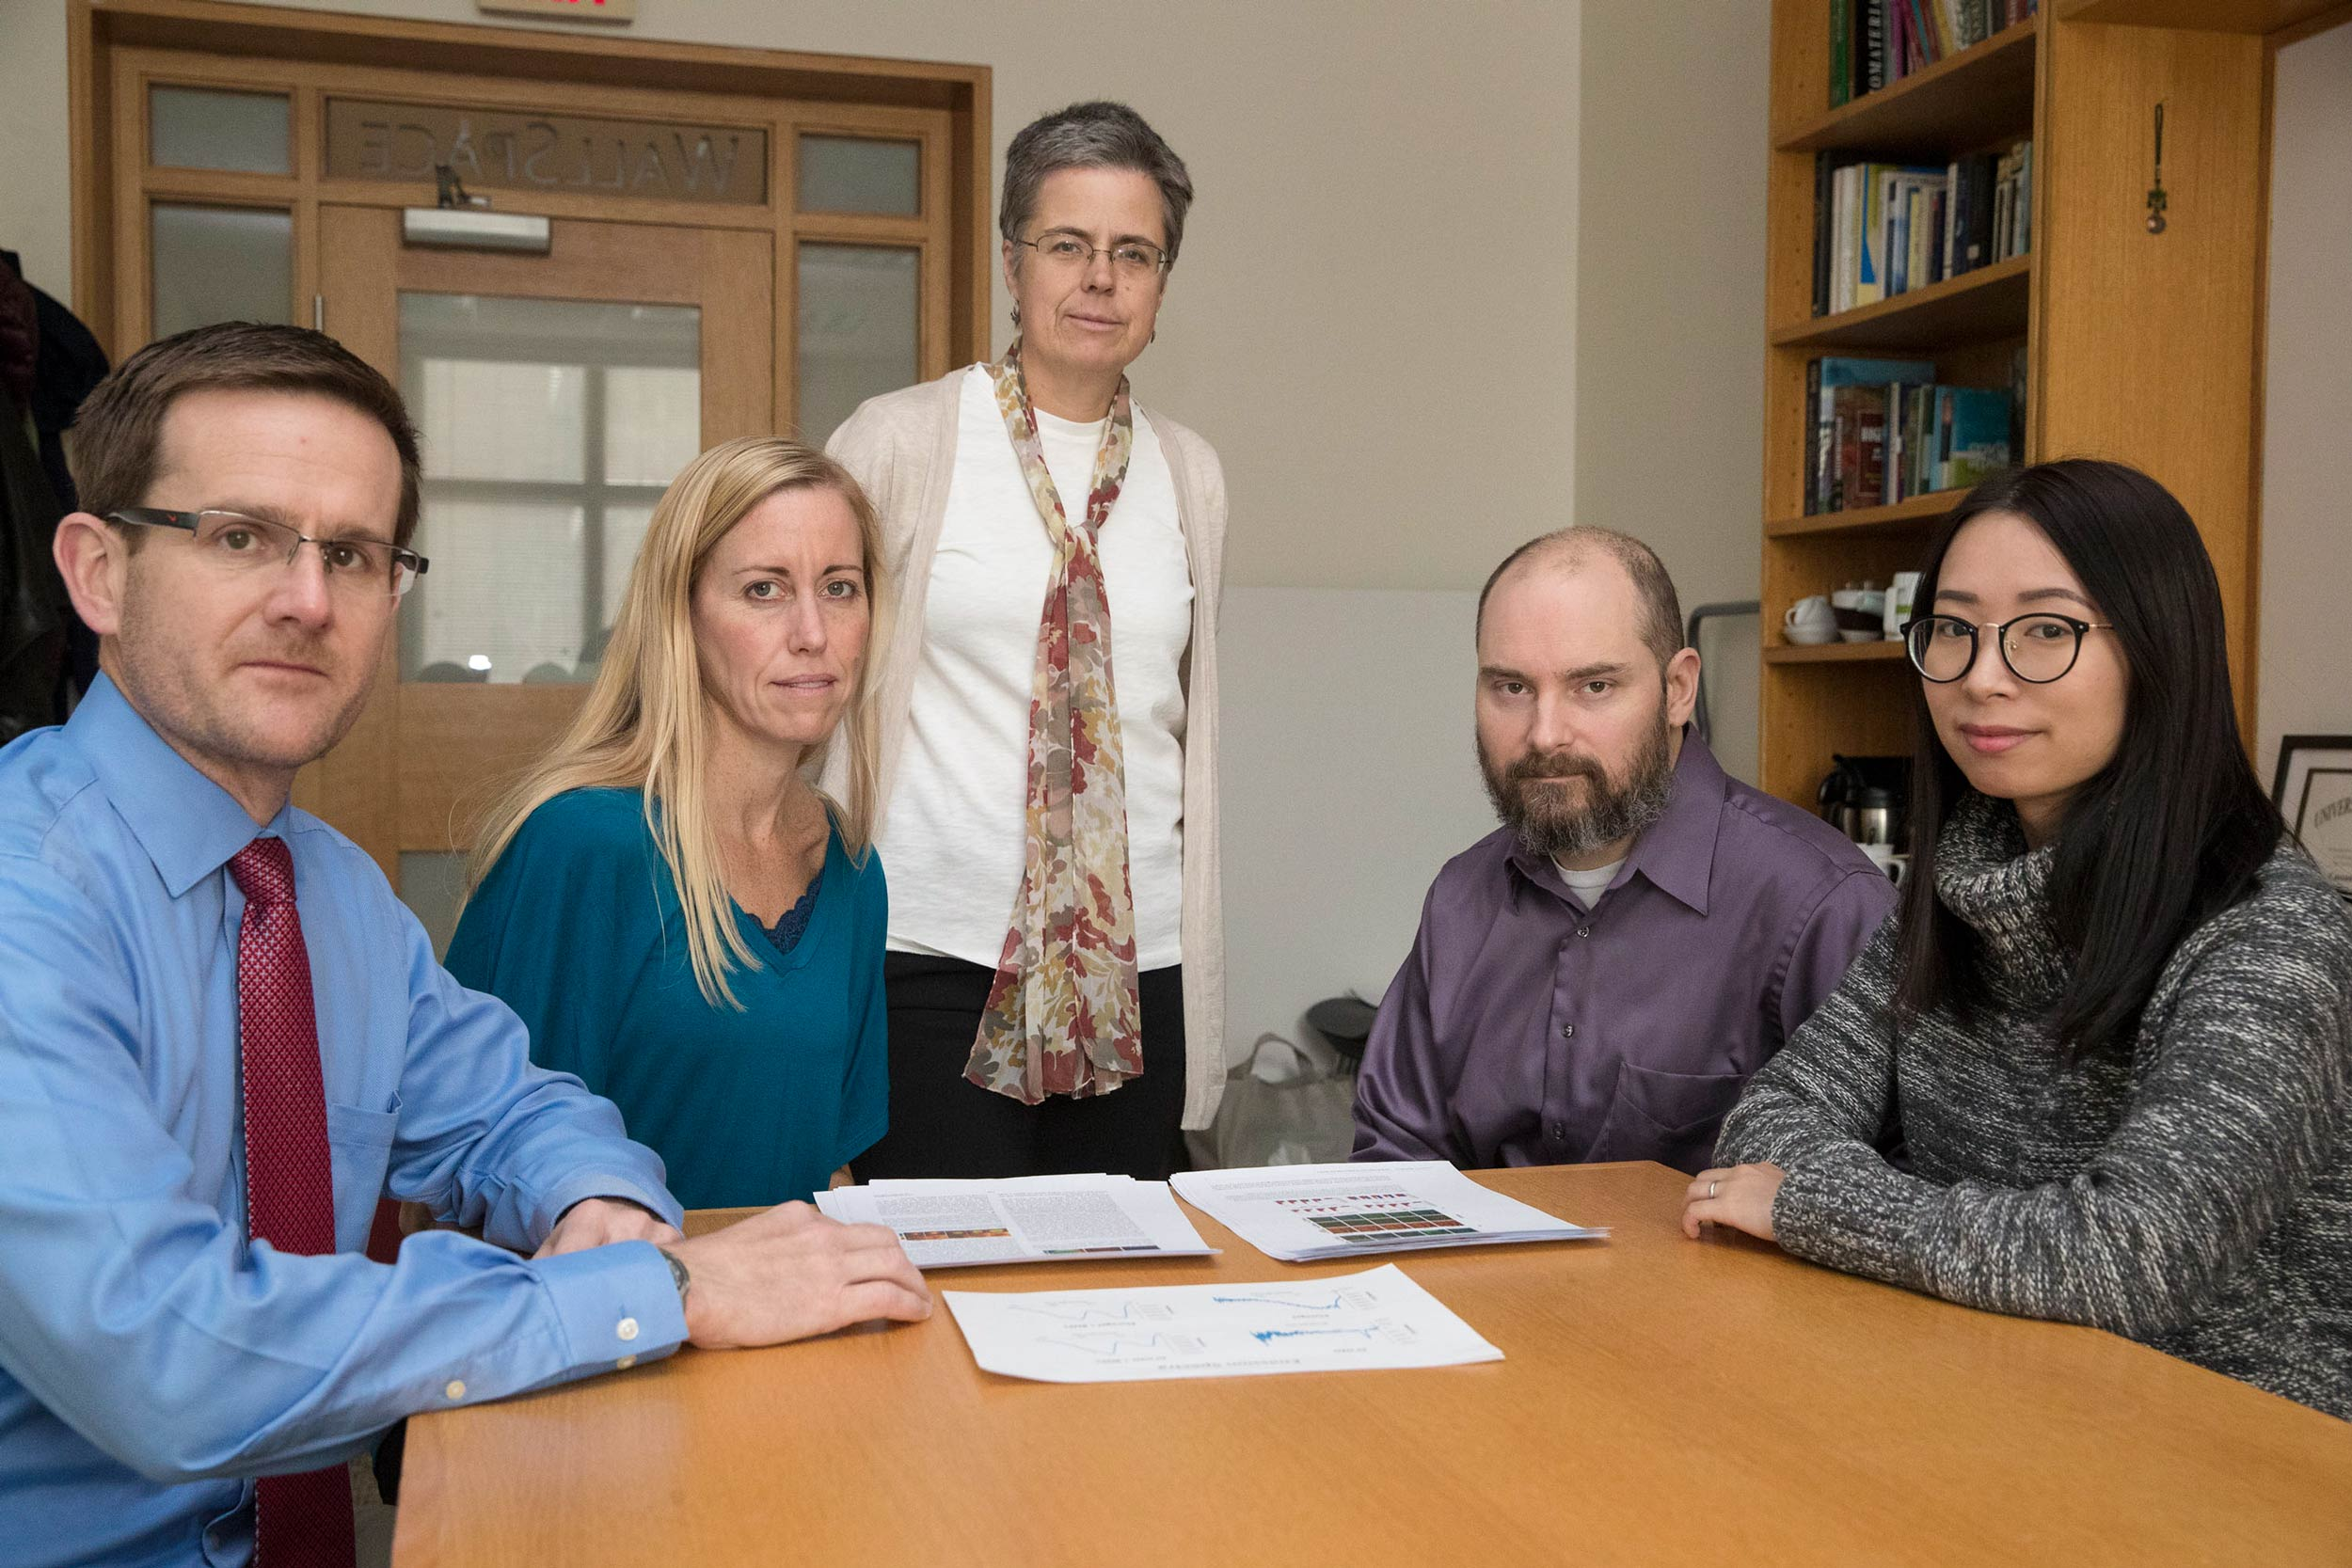 Some of the research team: left to right, faculty members Patrick Cottler, Shayn Peirce-Cottler and Cassandra Fraser, lab specialist Anthony Bruce, and grad student Meng Zhuang.